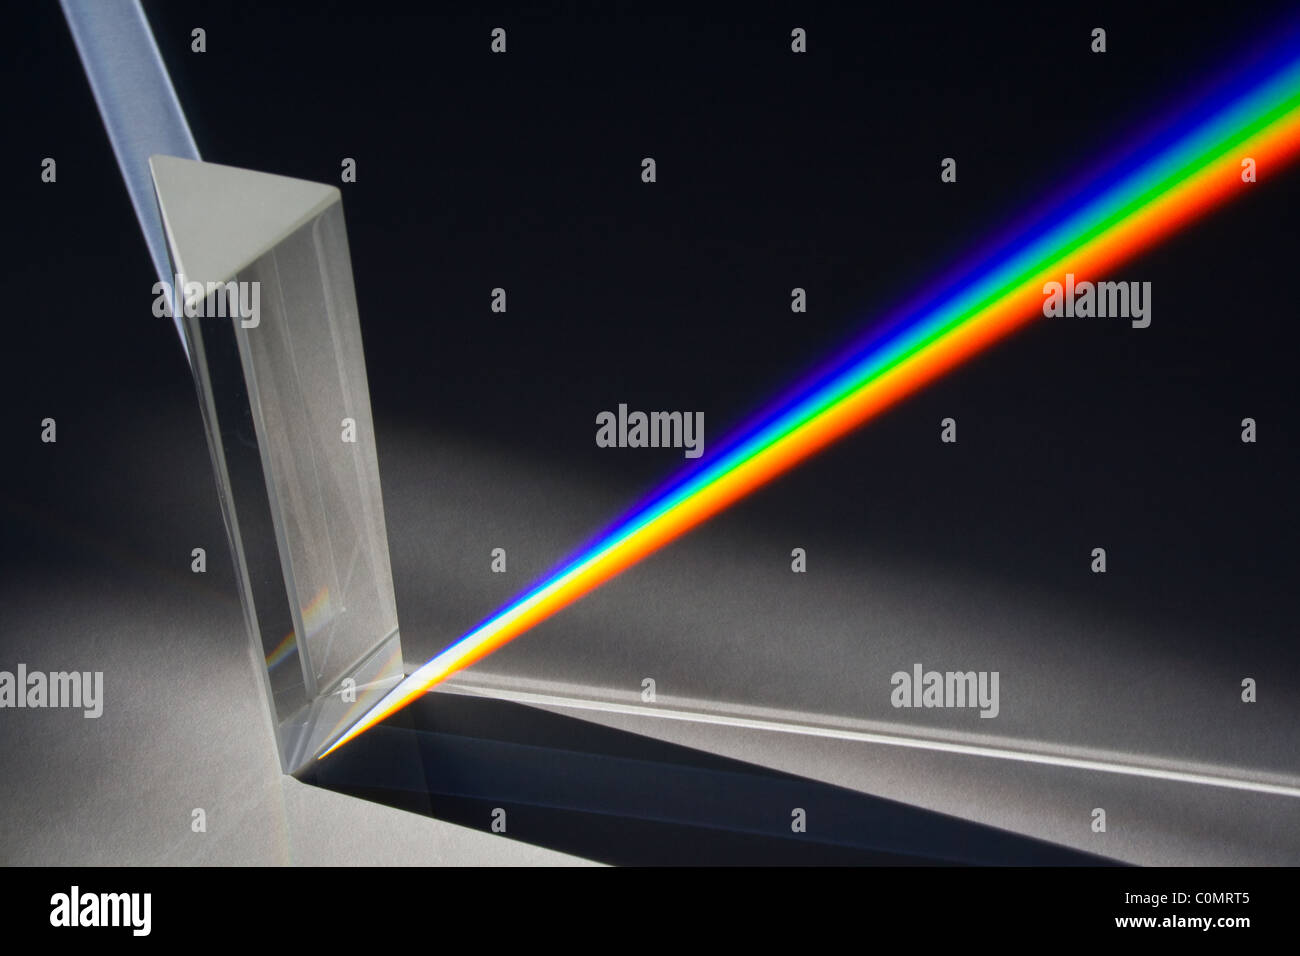 Light Spectrum Created by Sunlight Passing Through Glass Prism Stock Photo